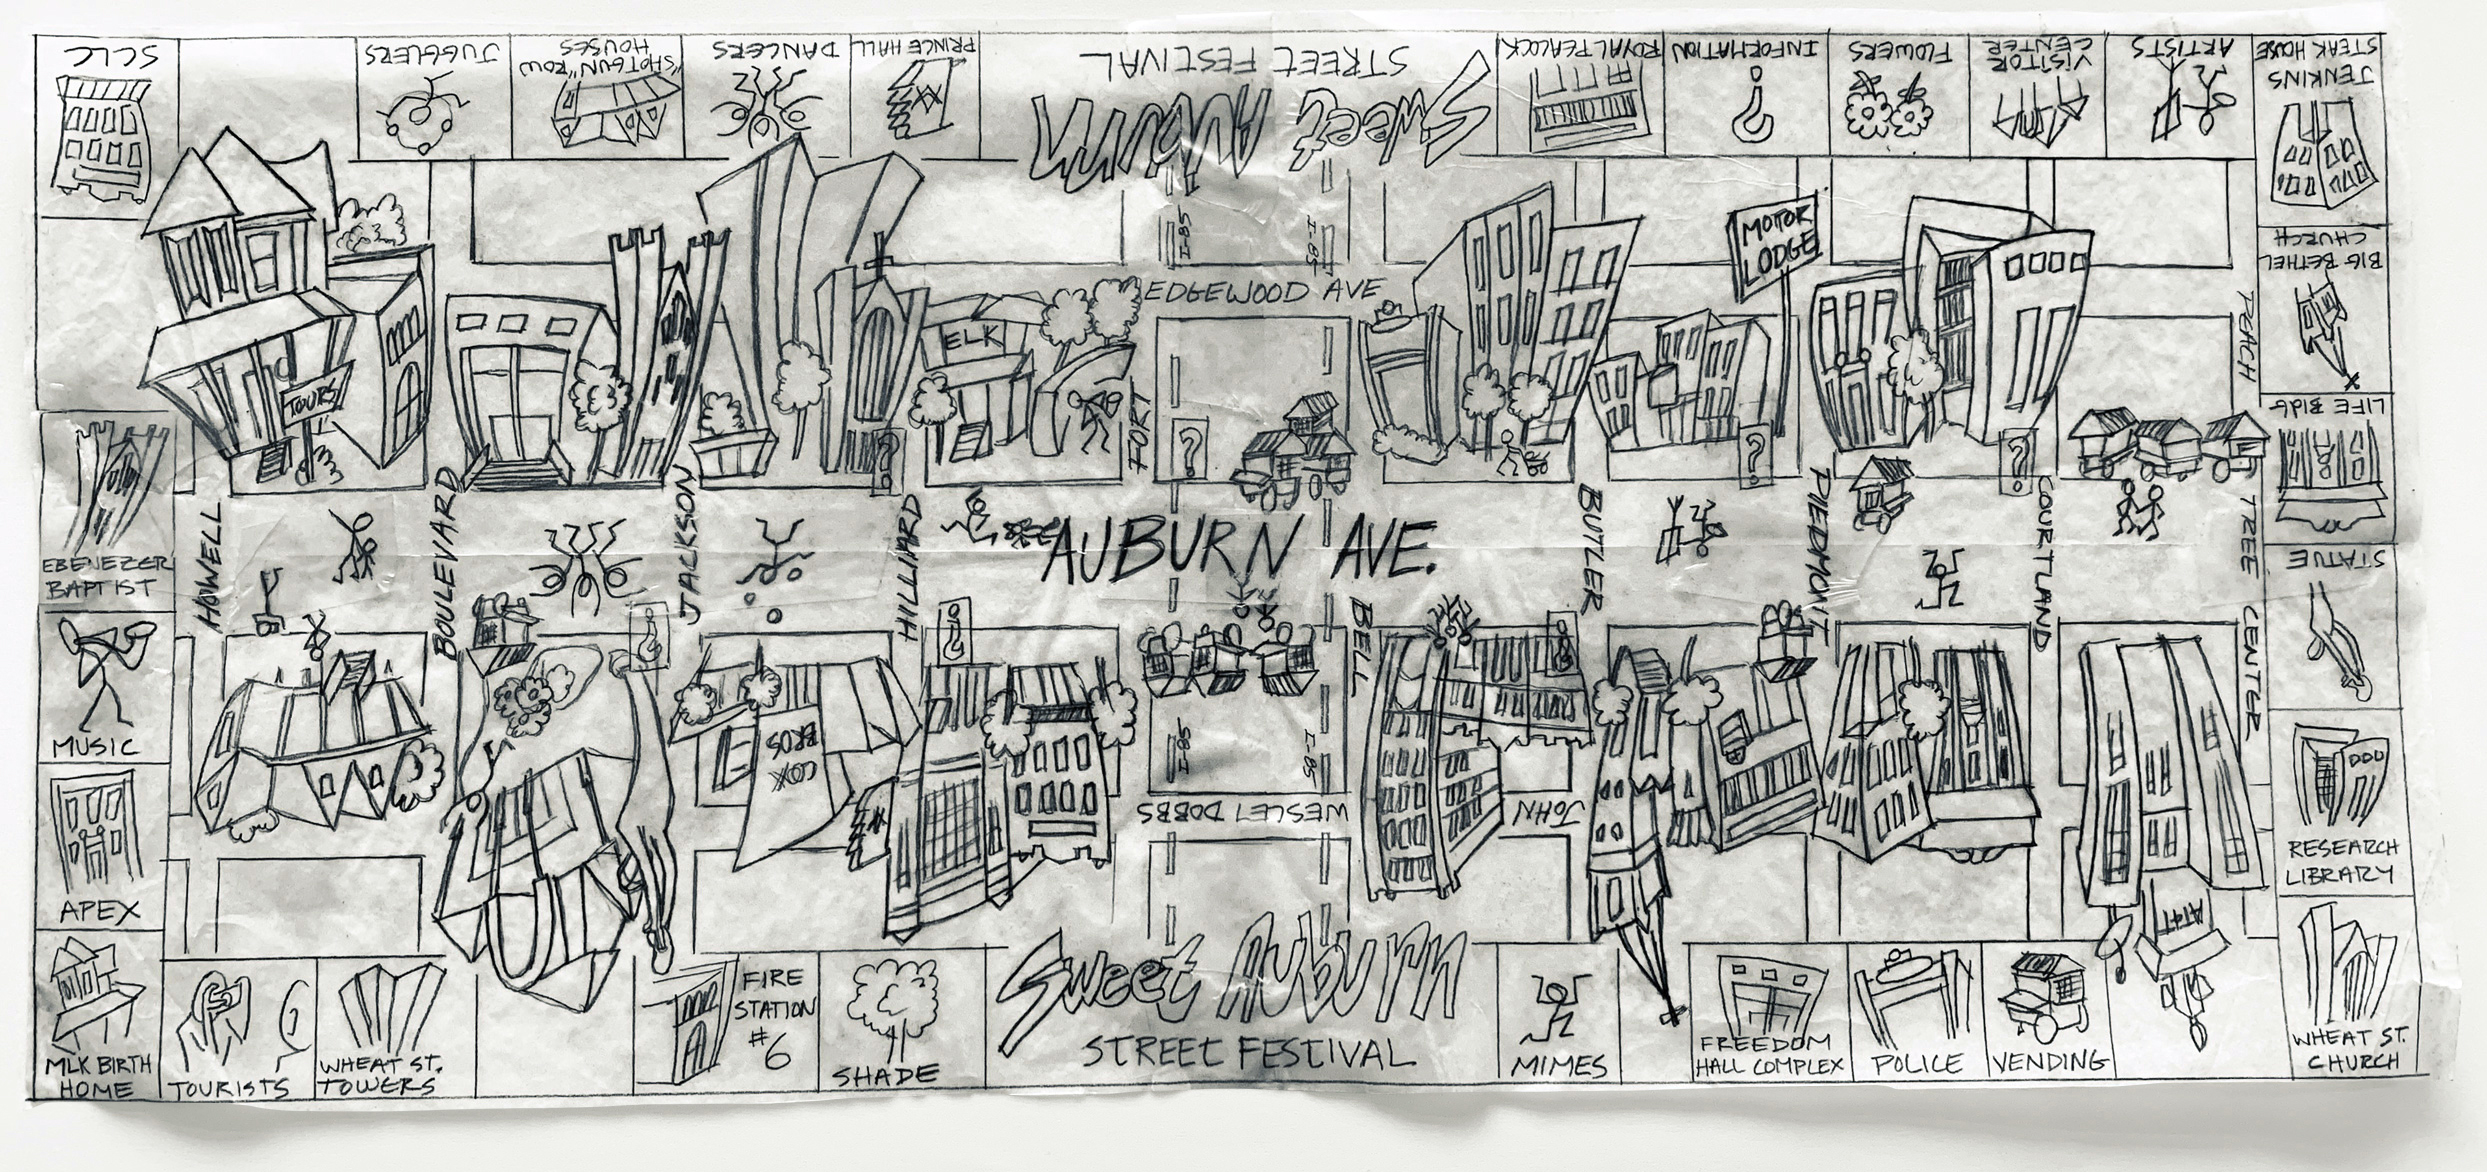 Concept sketch for the Sweet Auburn Festival Map, Circa 1995